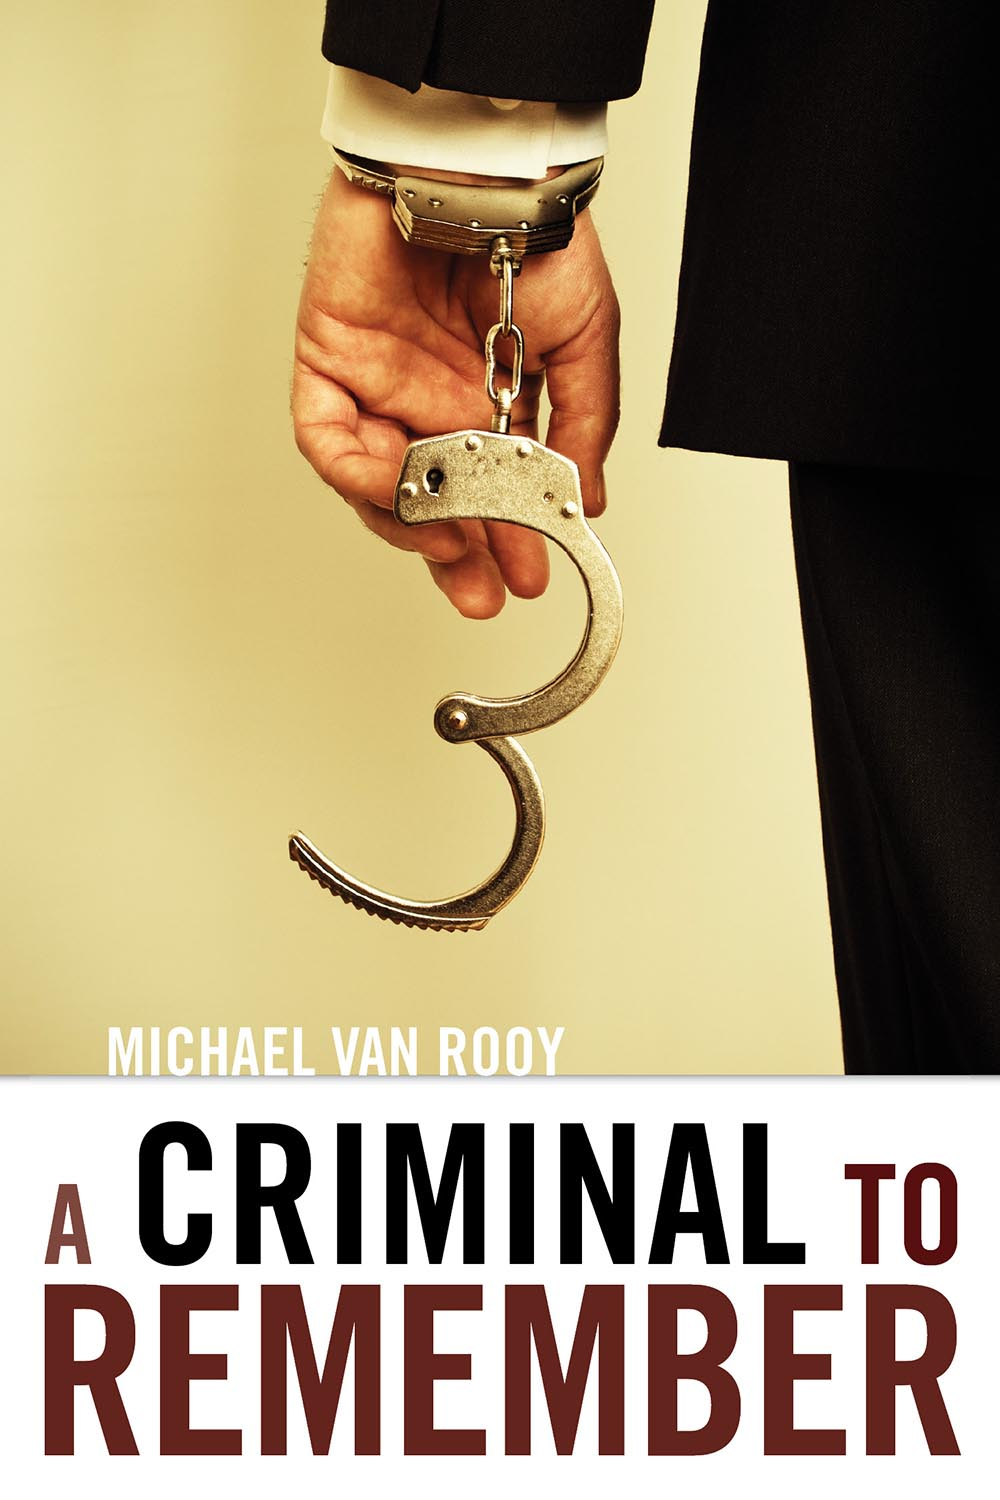 A Criminal to Remember by Michael Van Rooy